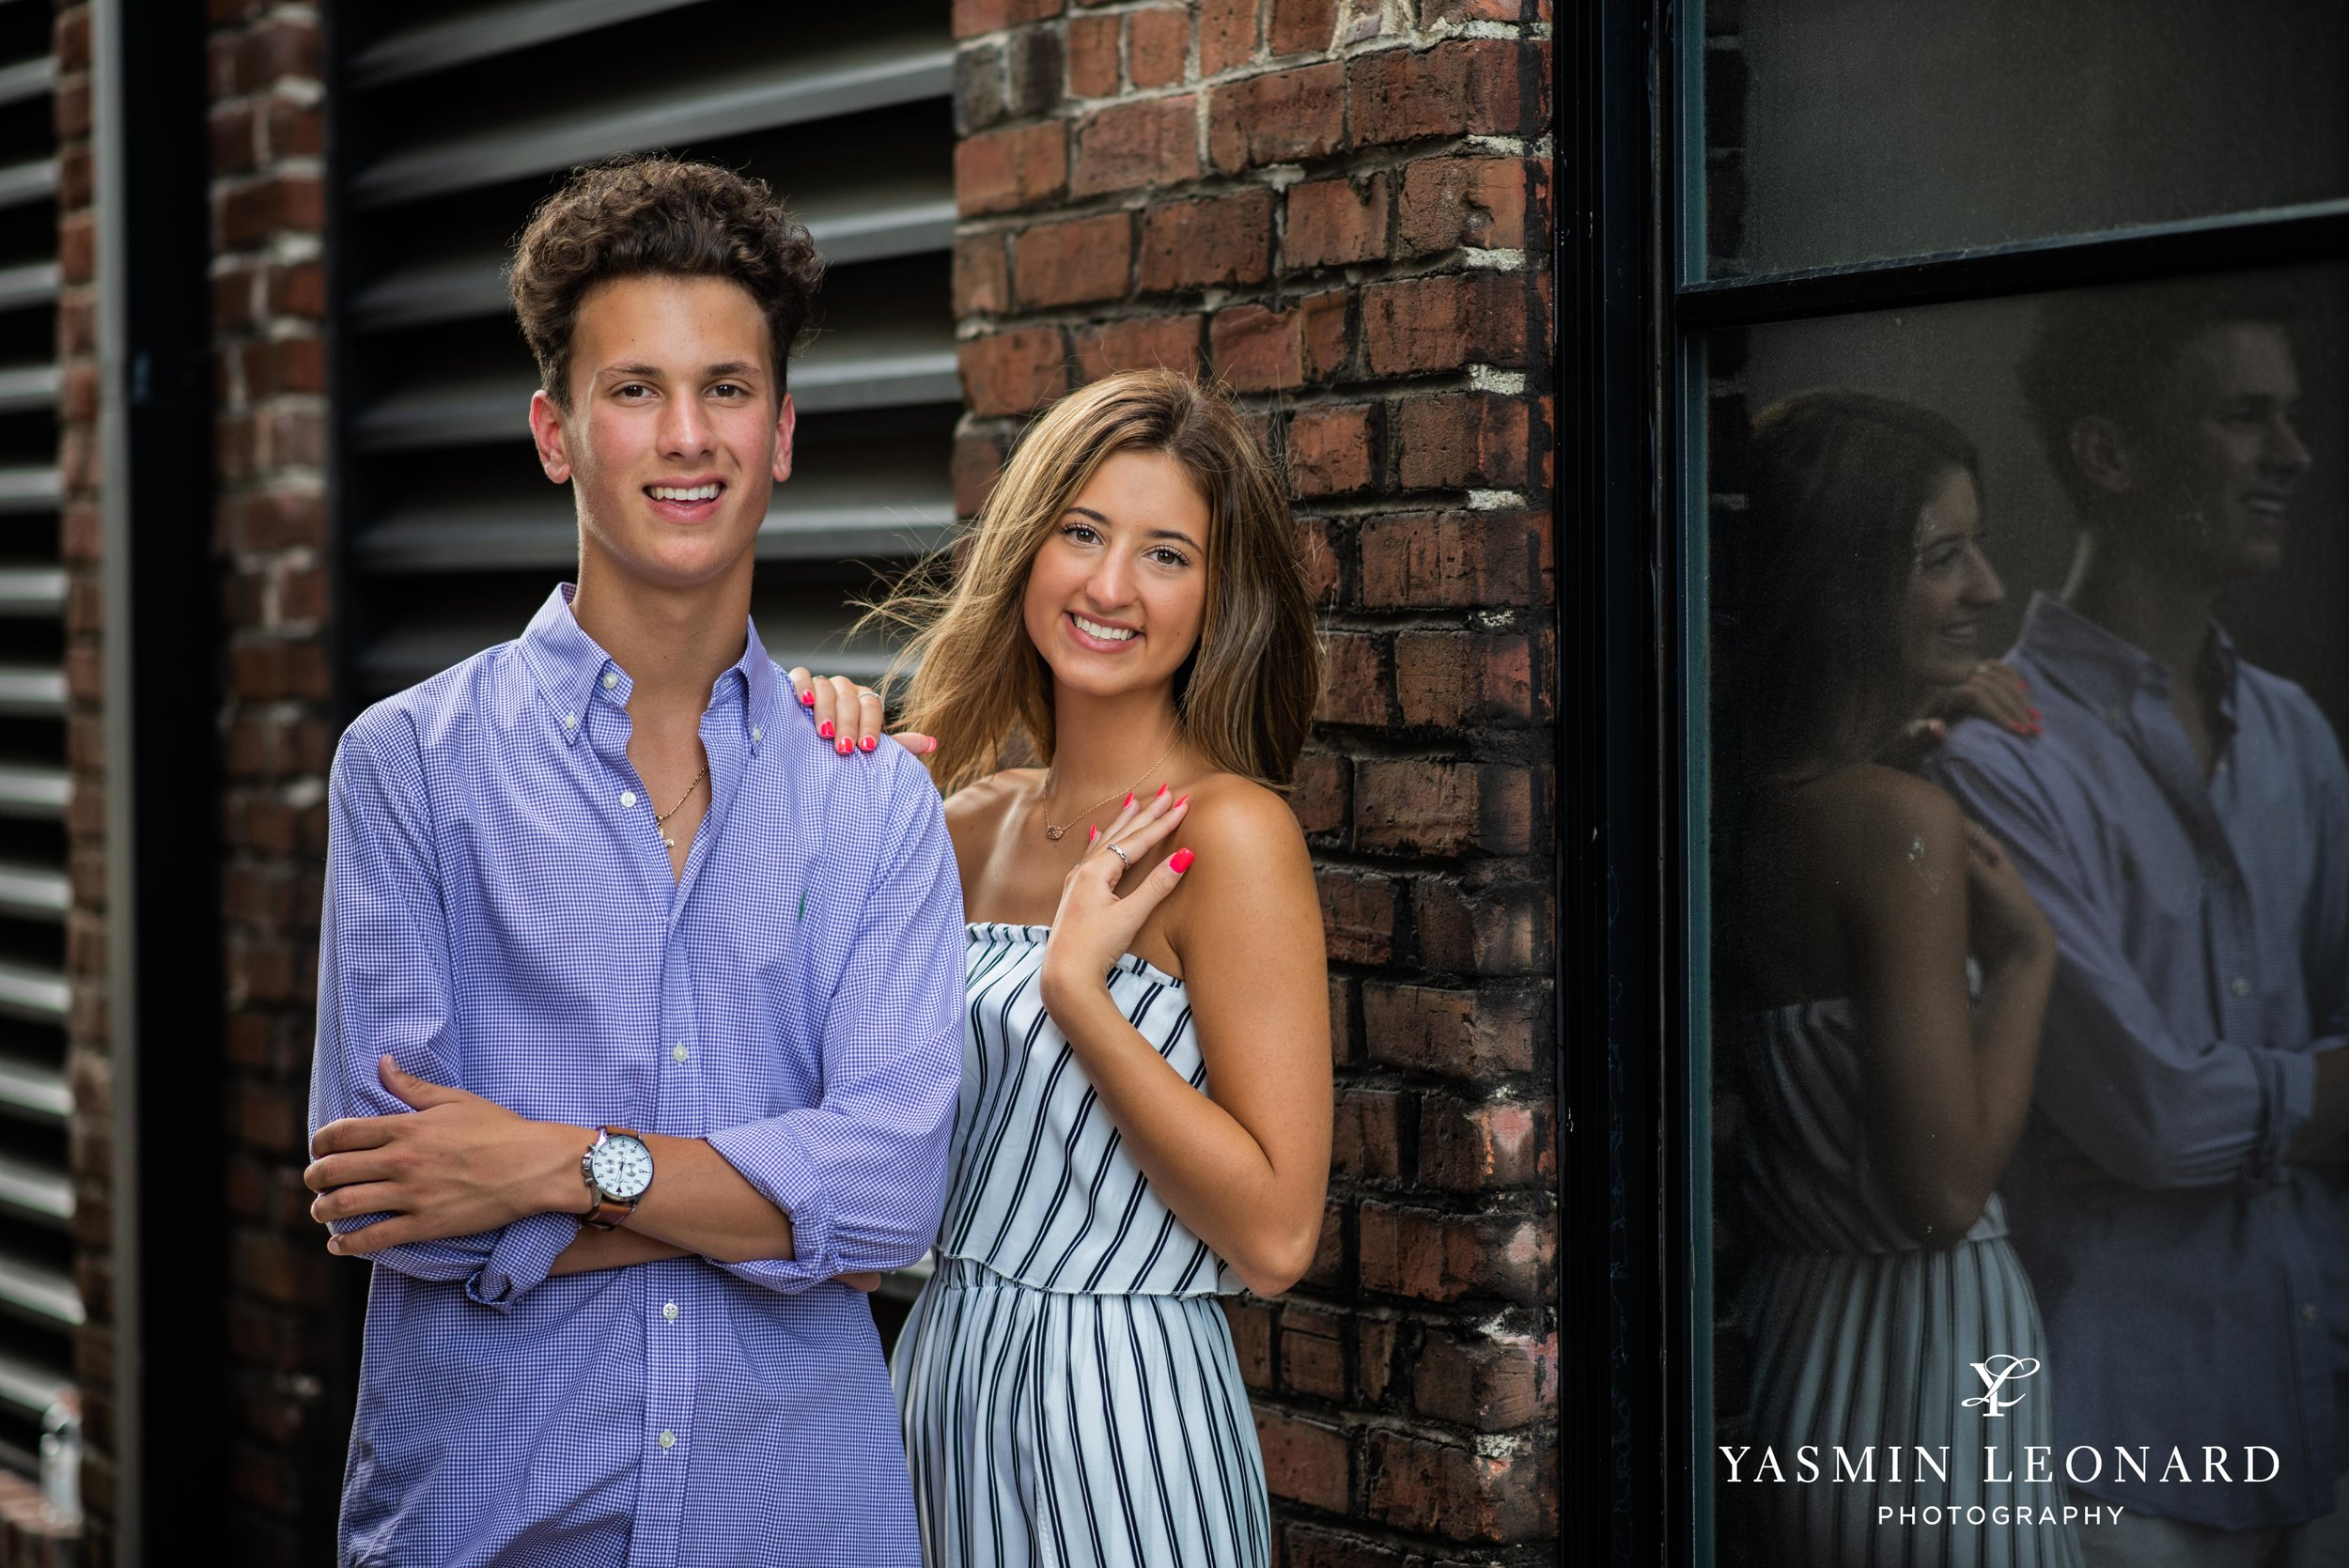 Twin Senior Portraits - Senior Pictures with your twin - How to pose twins - NC SEnior - Senior Pictures - Senior Twins - High Point Senior Portraits - Winston Senior Portraits - Yasmin Leonard Photography-6.jpg